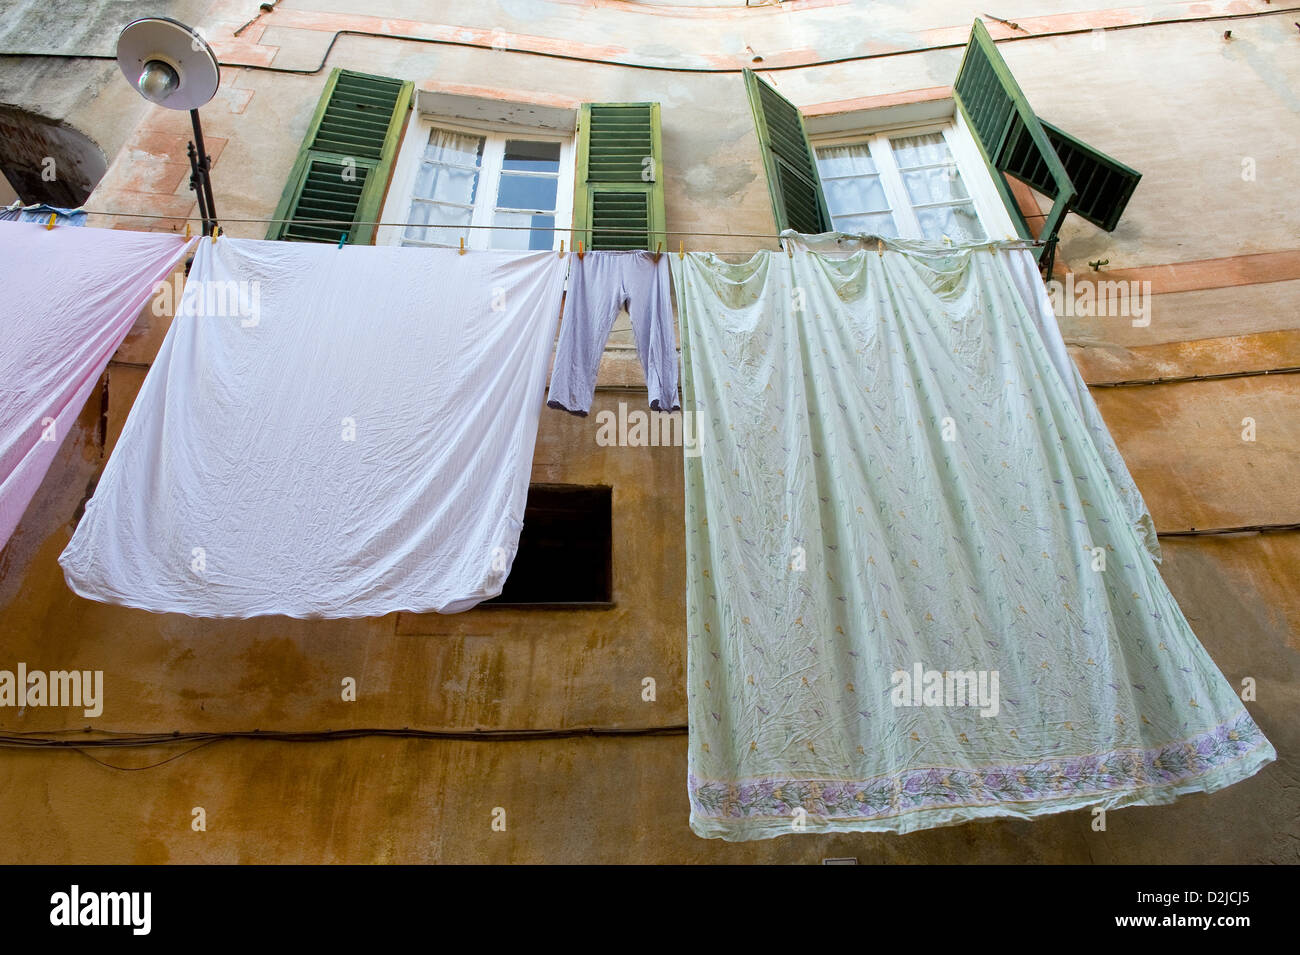 Finale Ligure, Italy, laundry hangs to dry out a window - Stock Image